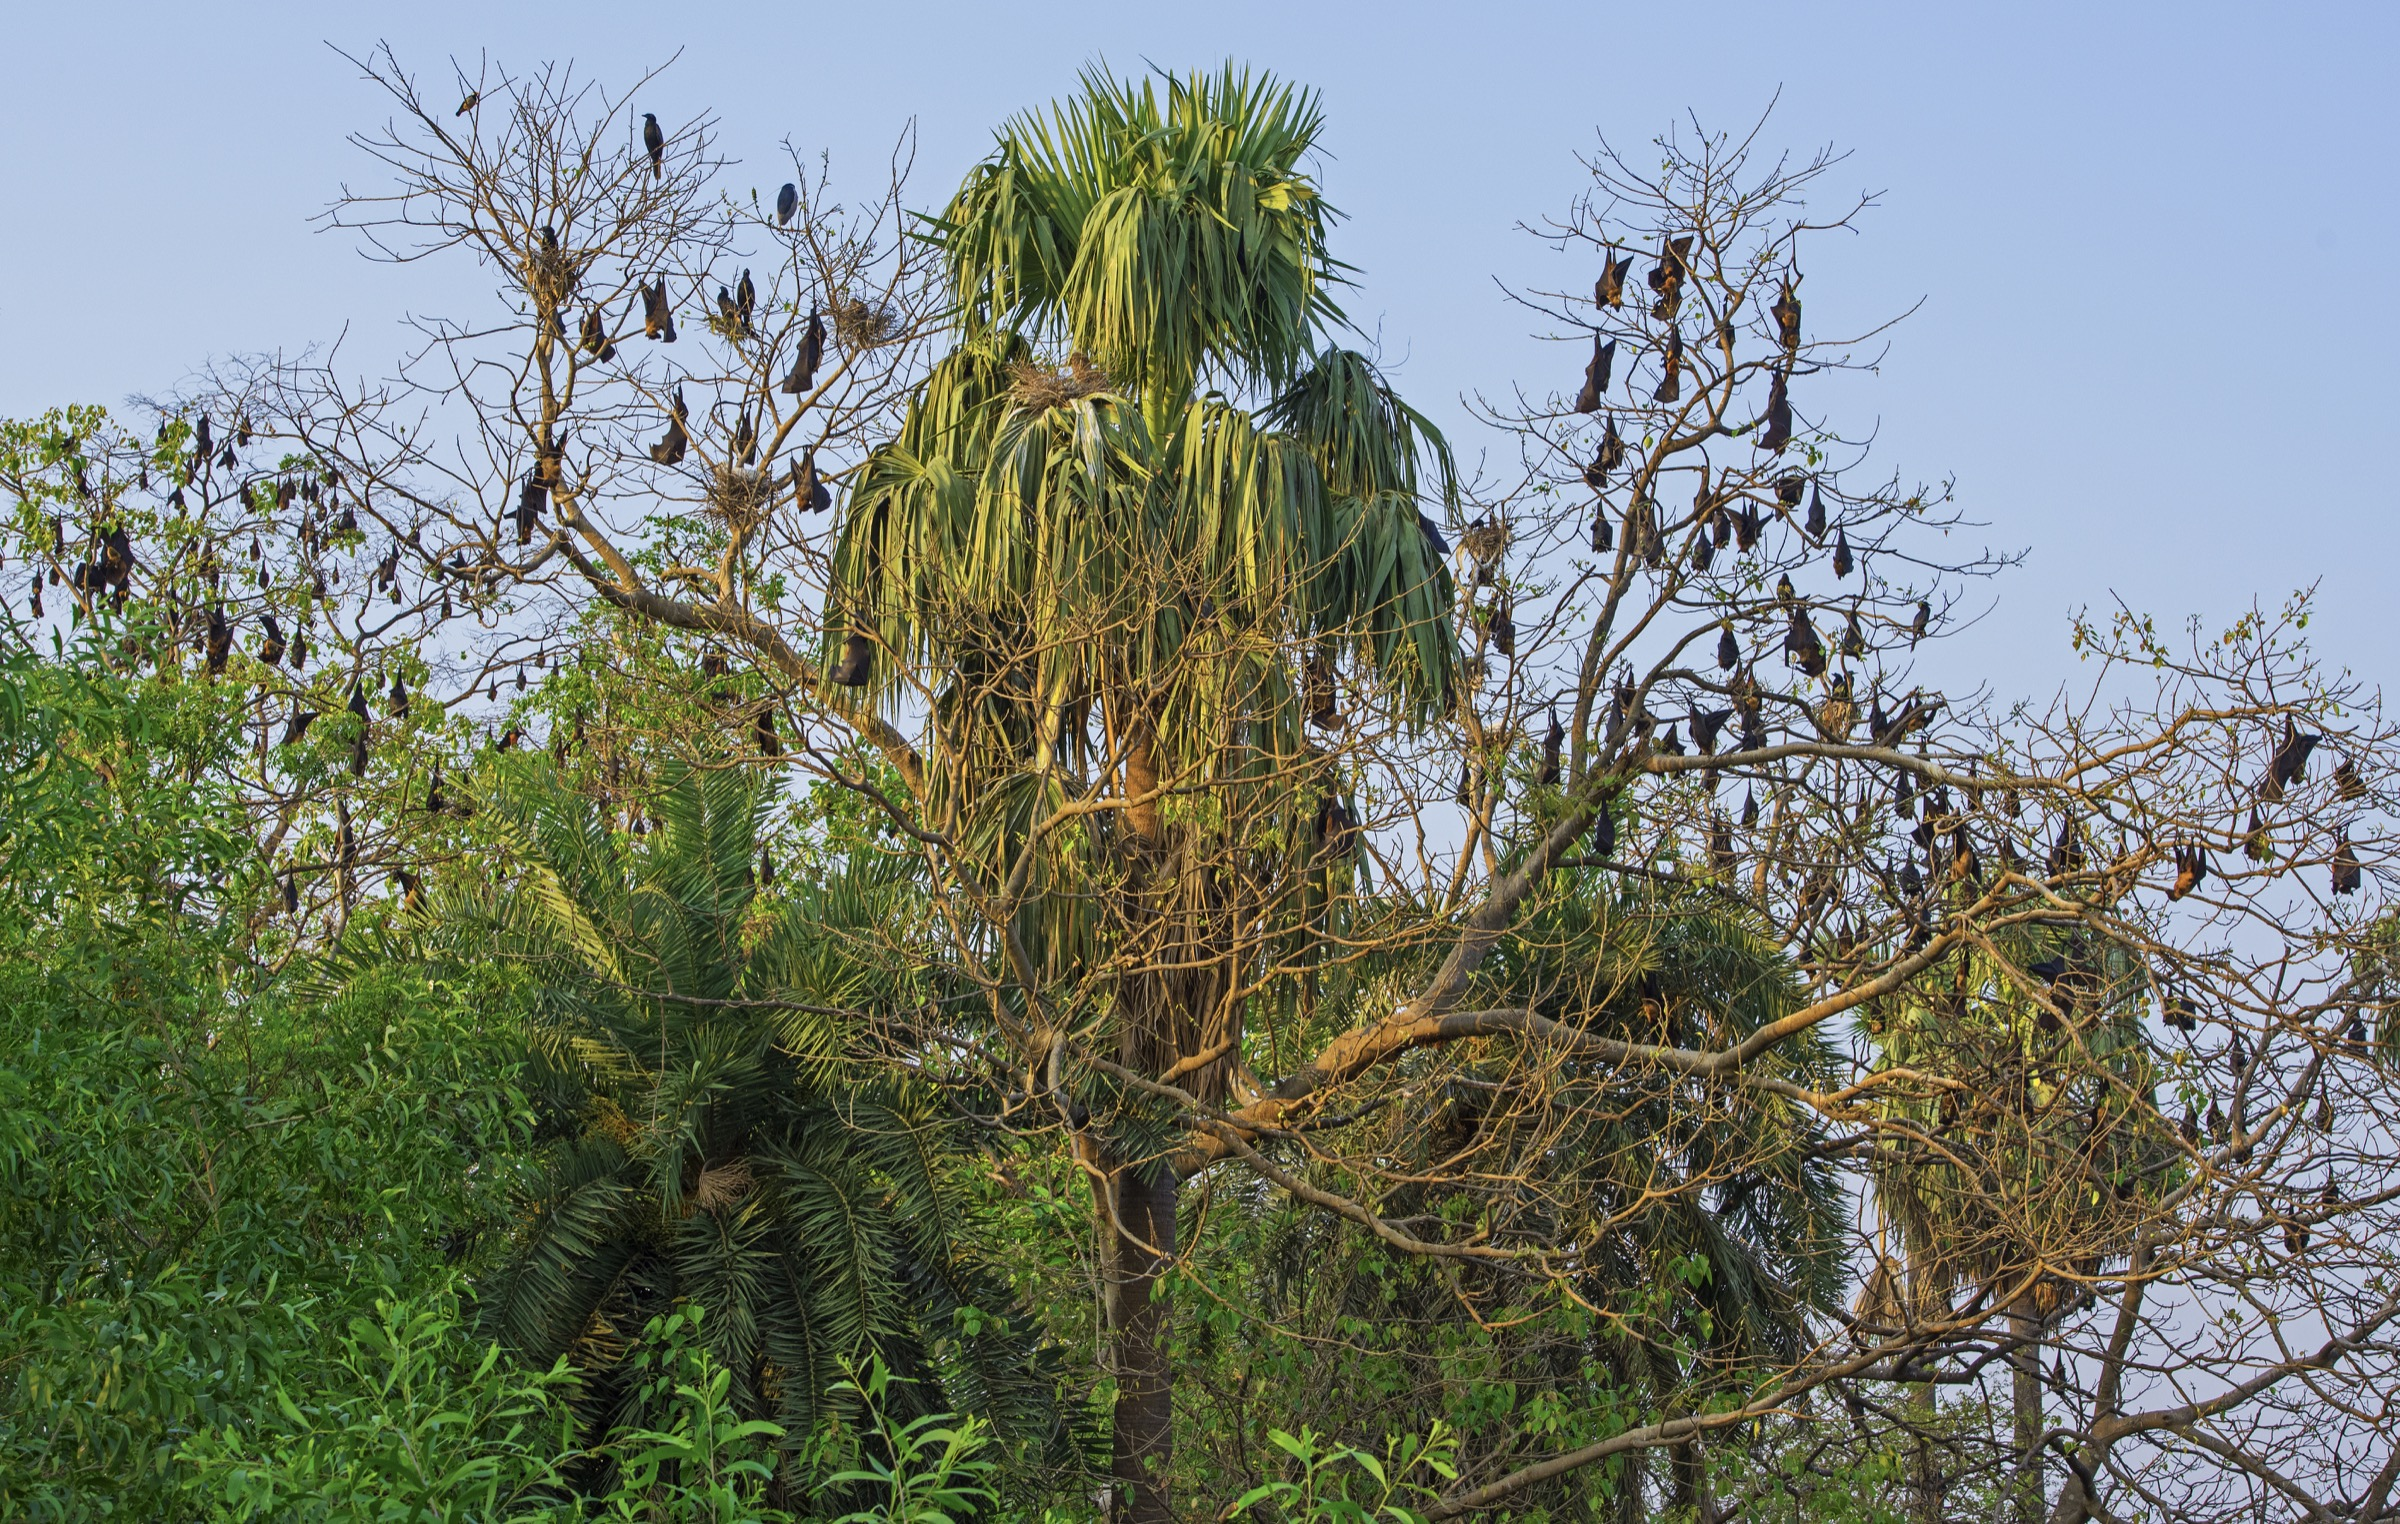 Indian flying foxes typically roost in groups like this colony photographed in India's West Bengal. These groups can number anywhere from several dozen to several hundreds. Photograph by Dhritiman Mukherjee